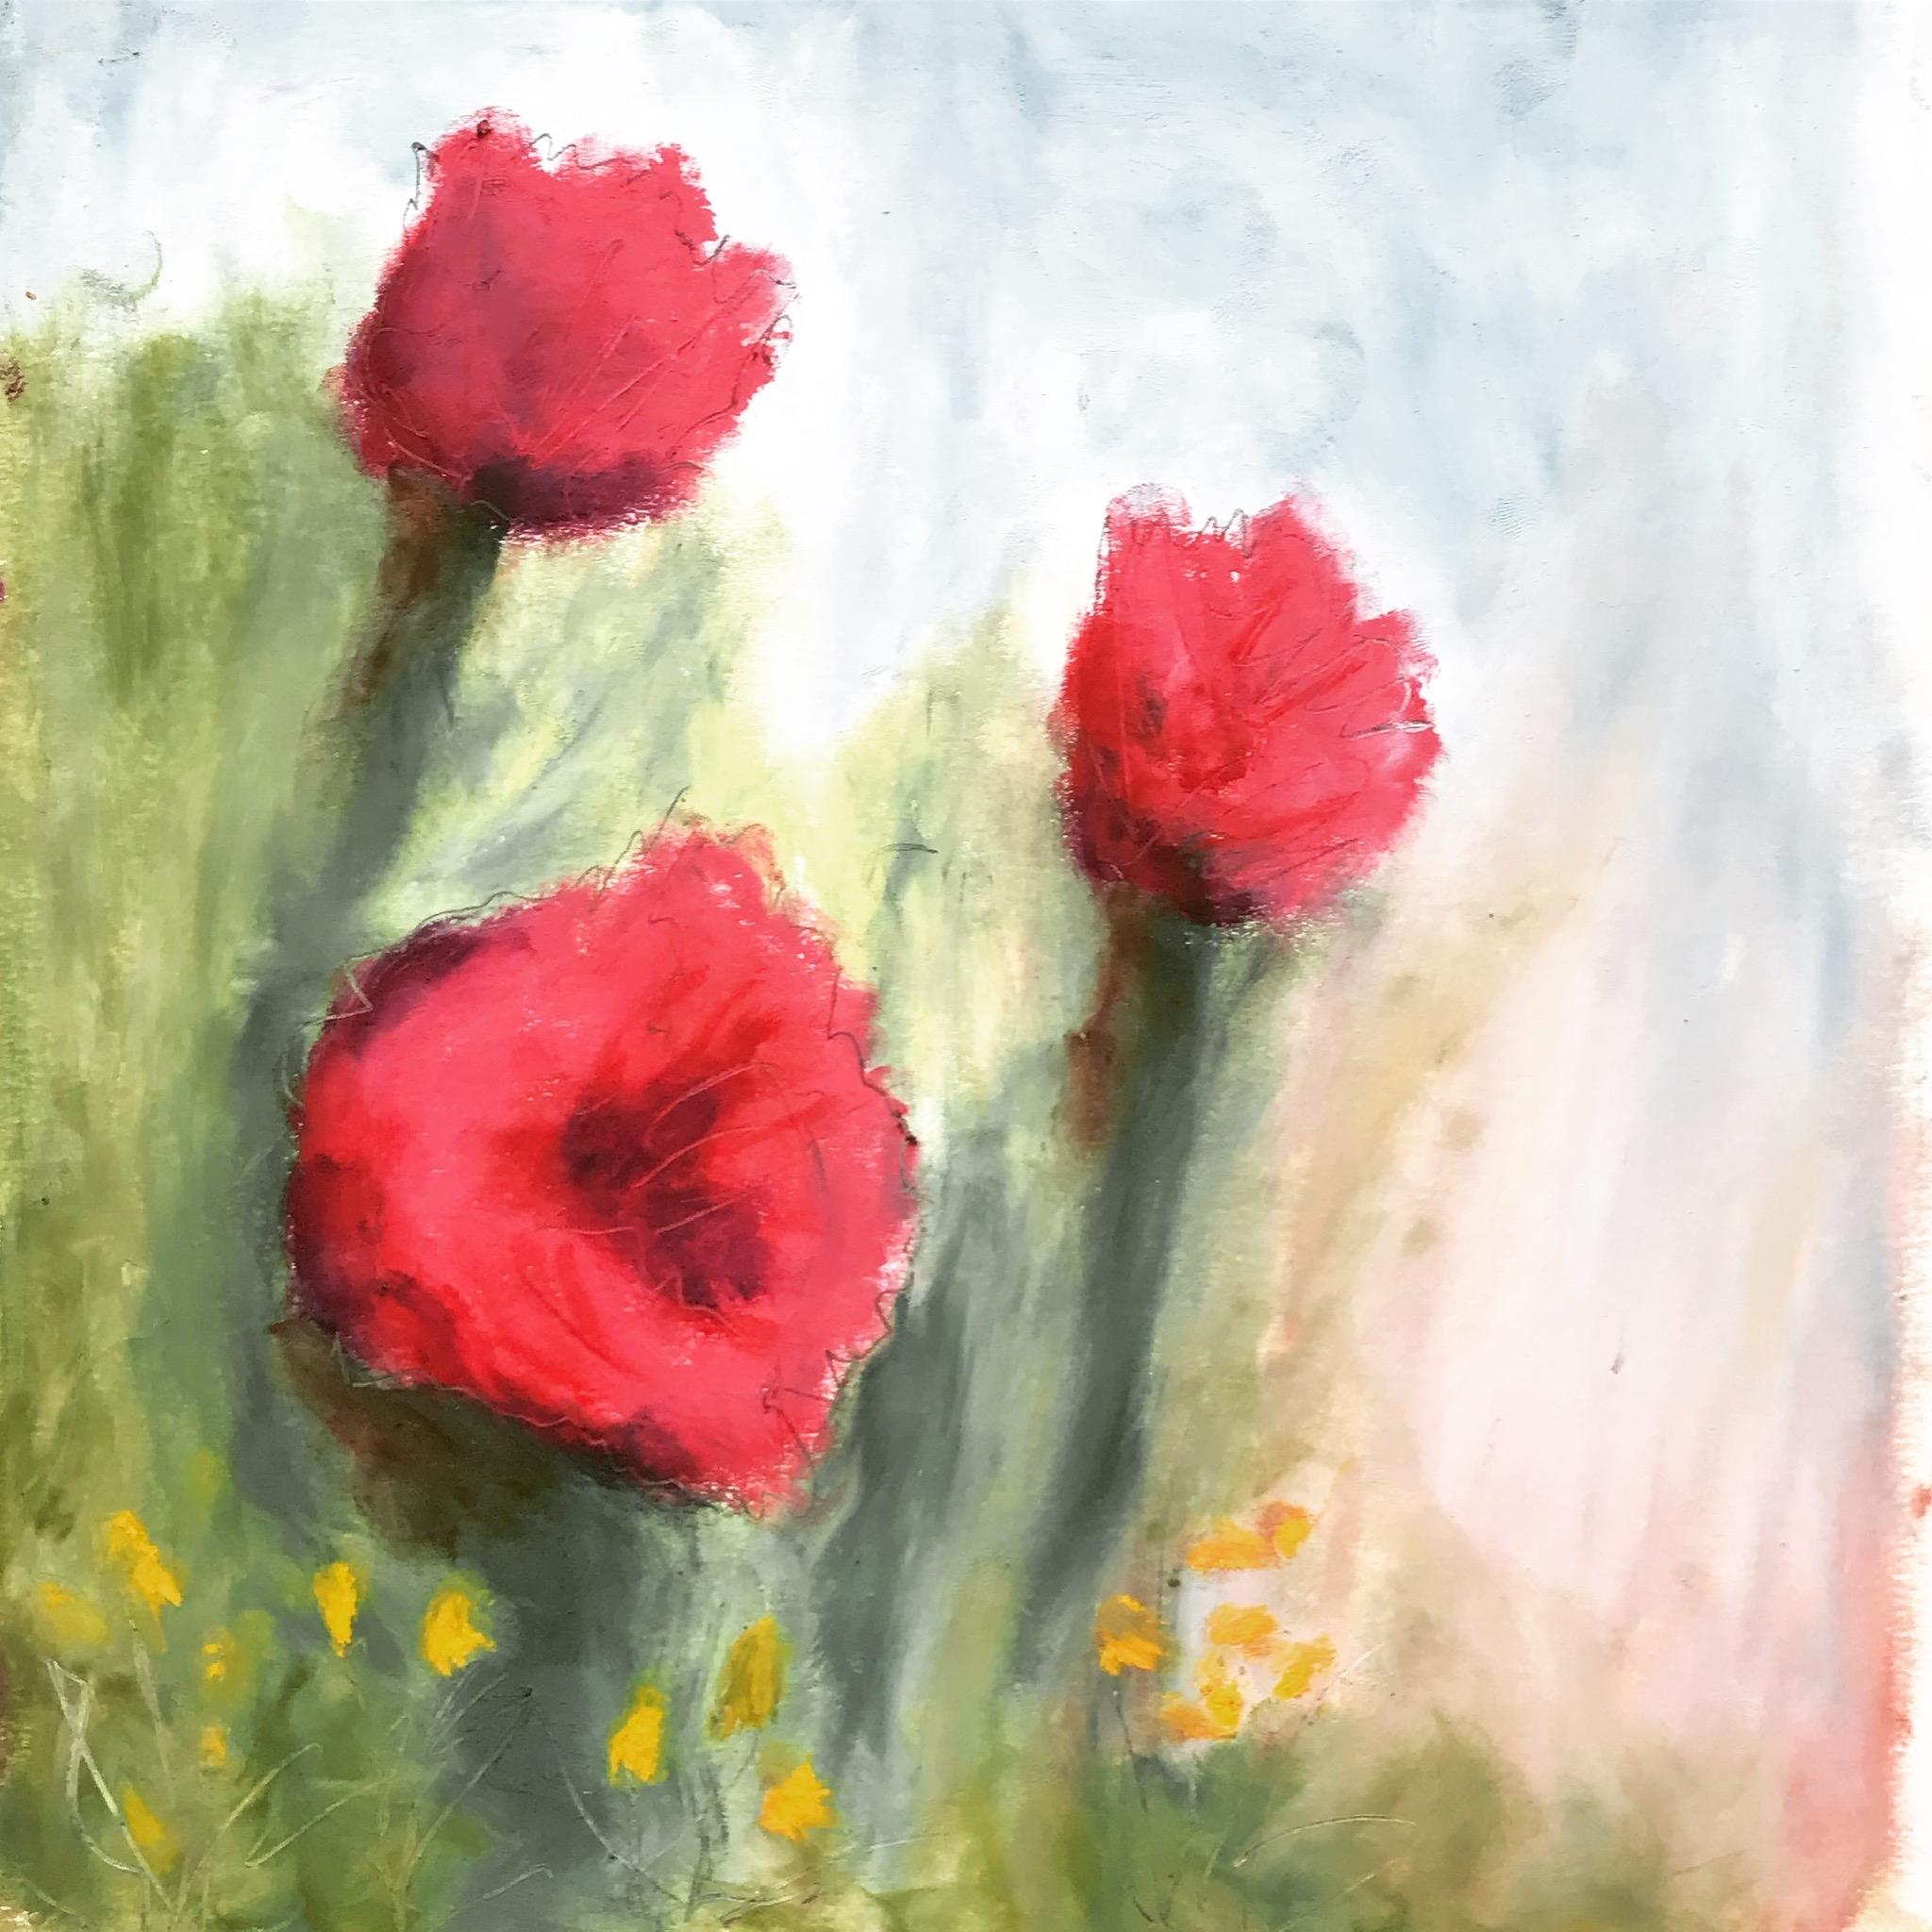 Wild poppies - One of my favorite new oil pastel paintings, which I made using Sennelier oil pastels and cold-pressed watercolor paper